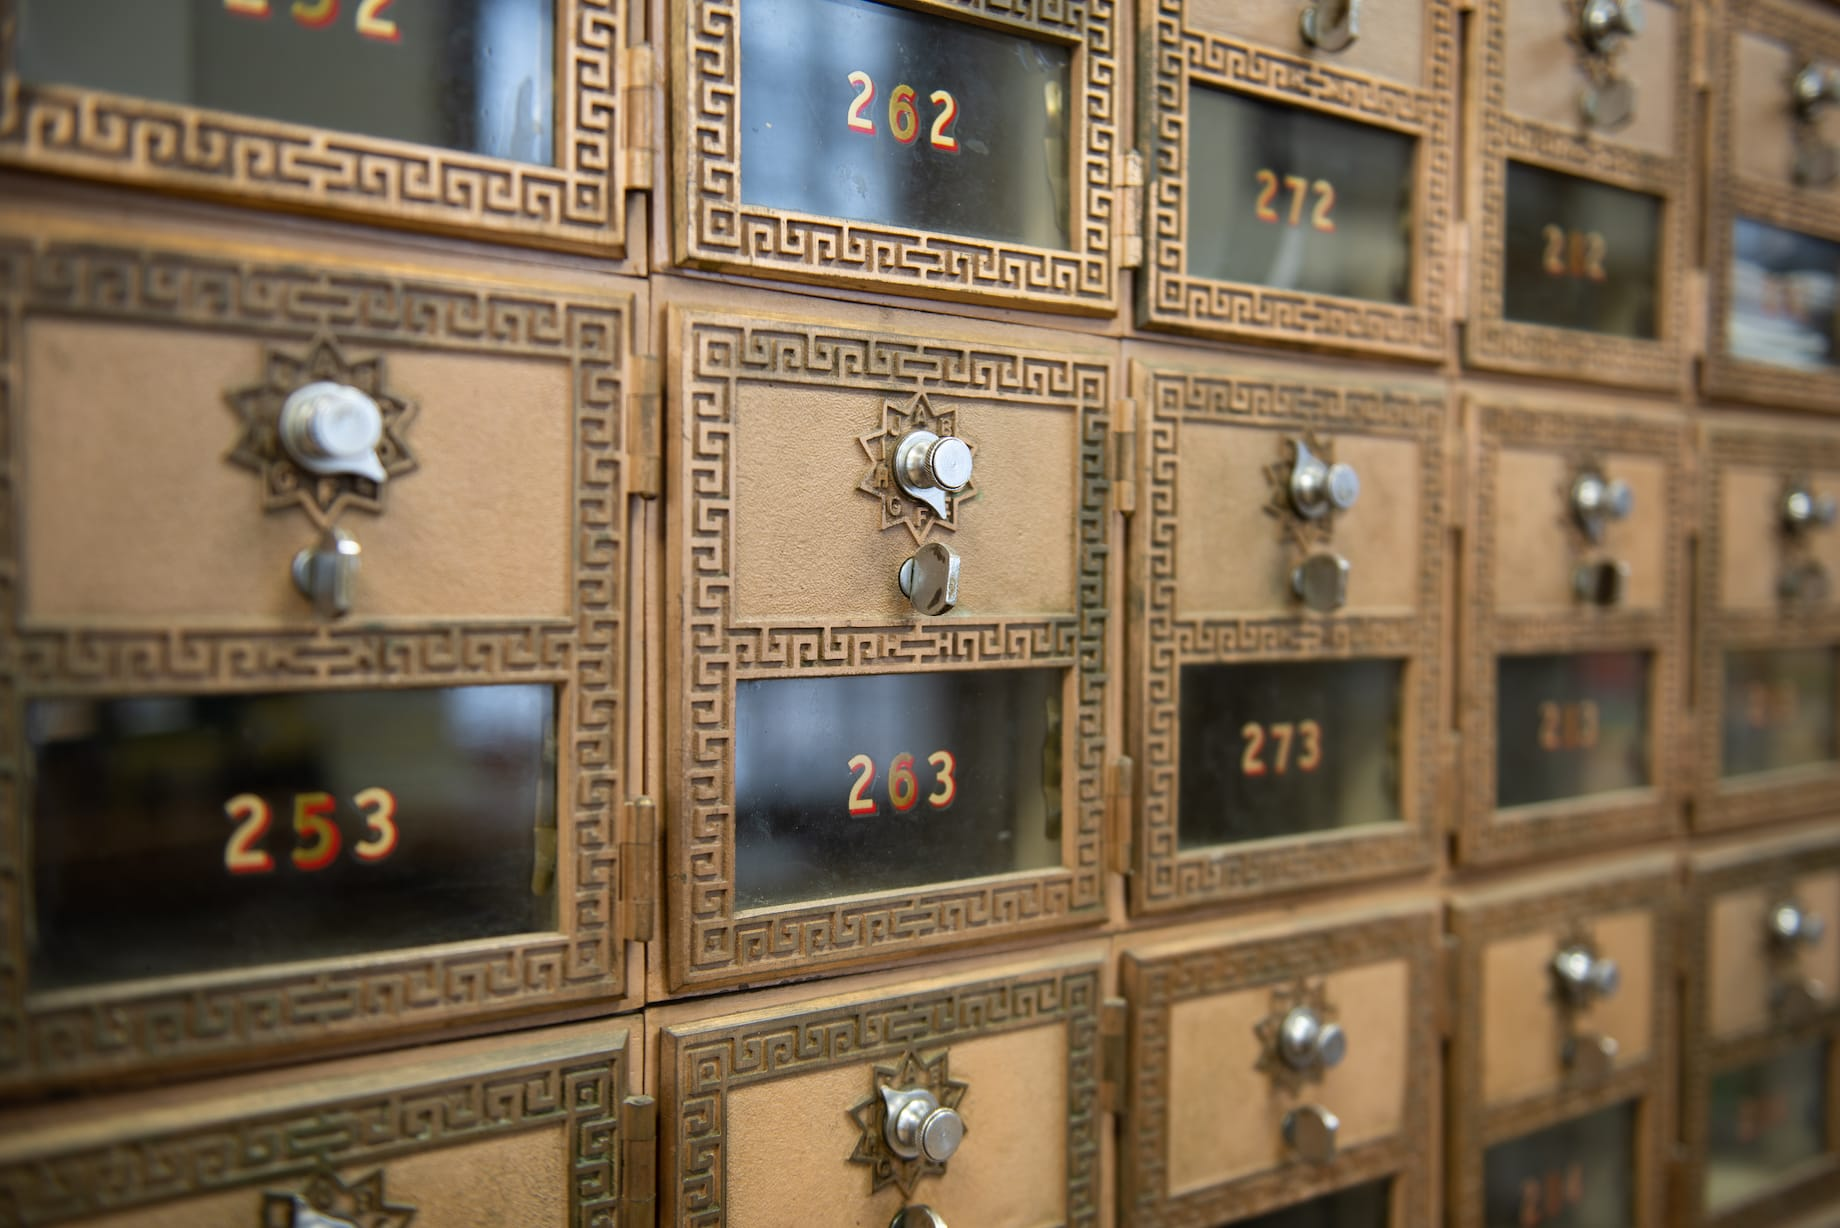 How Much is a PO Box?